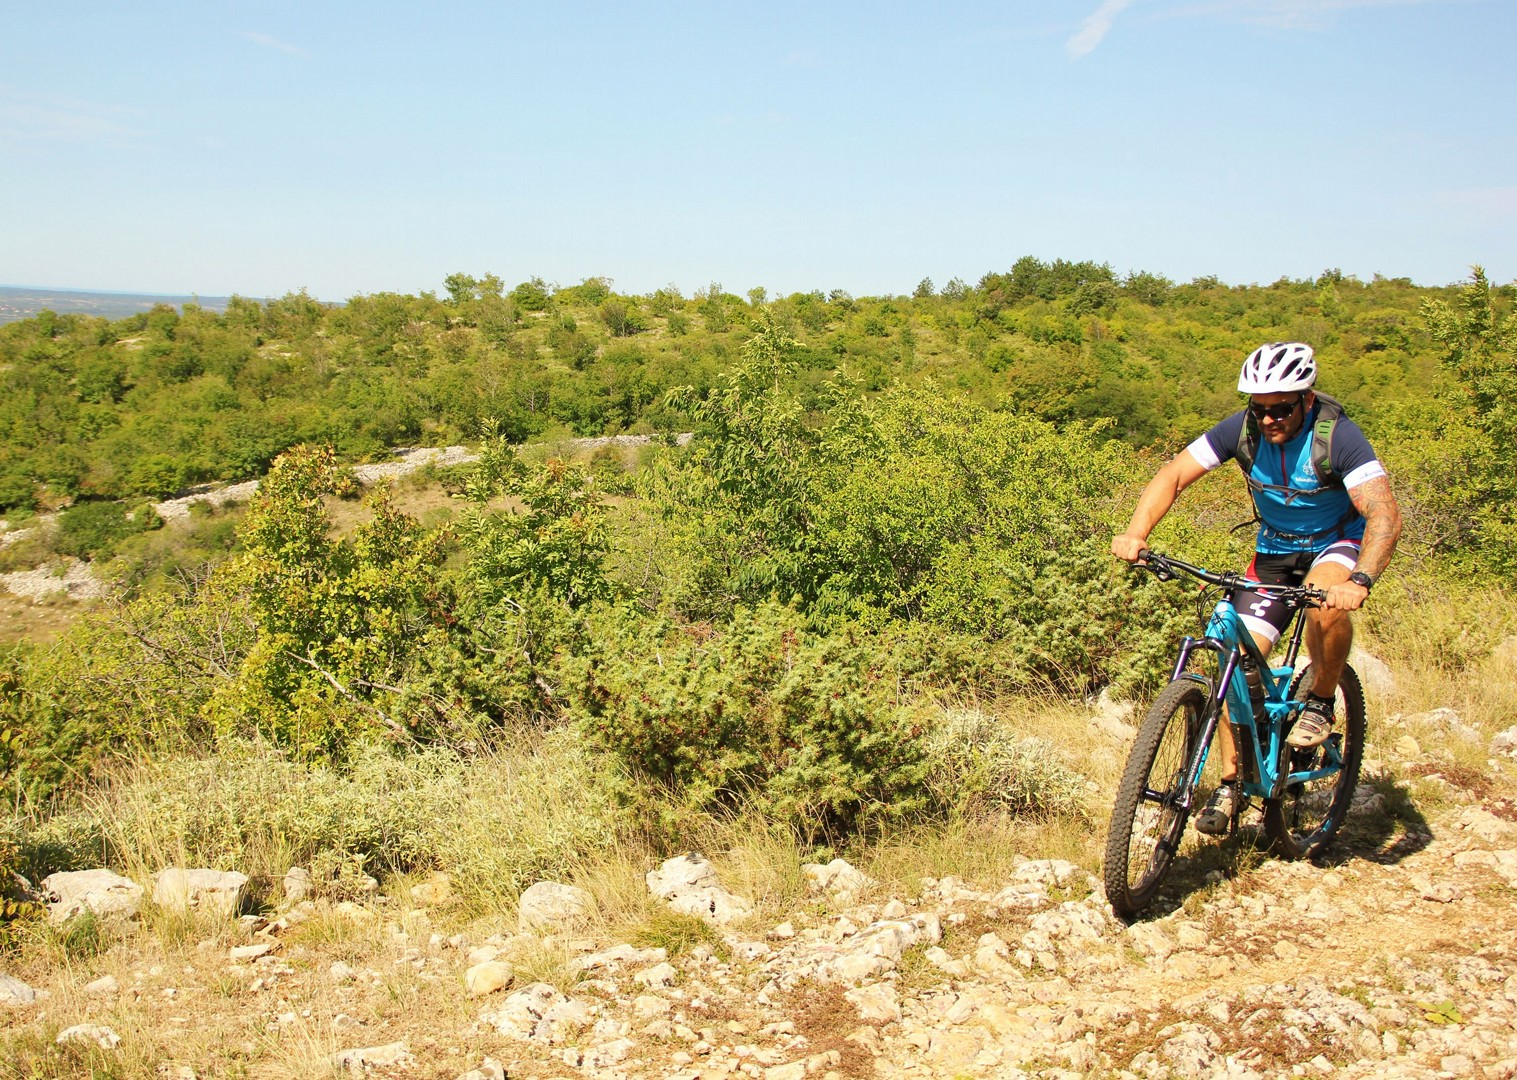 mountain-biking-croatia-magic-land-of-istria.JPG - Croatia - Terra Magica - Mountain Biking